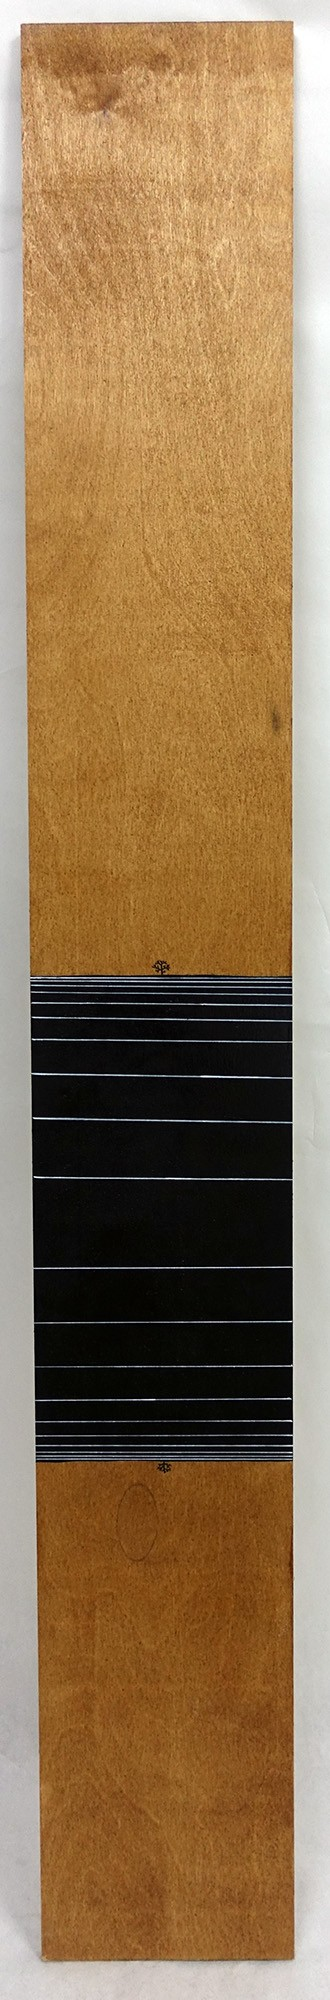 Klone, Mutual Attraction, Enamel and ink on wood, 2016, 148x20 cm